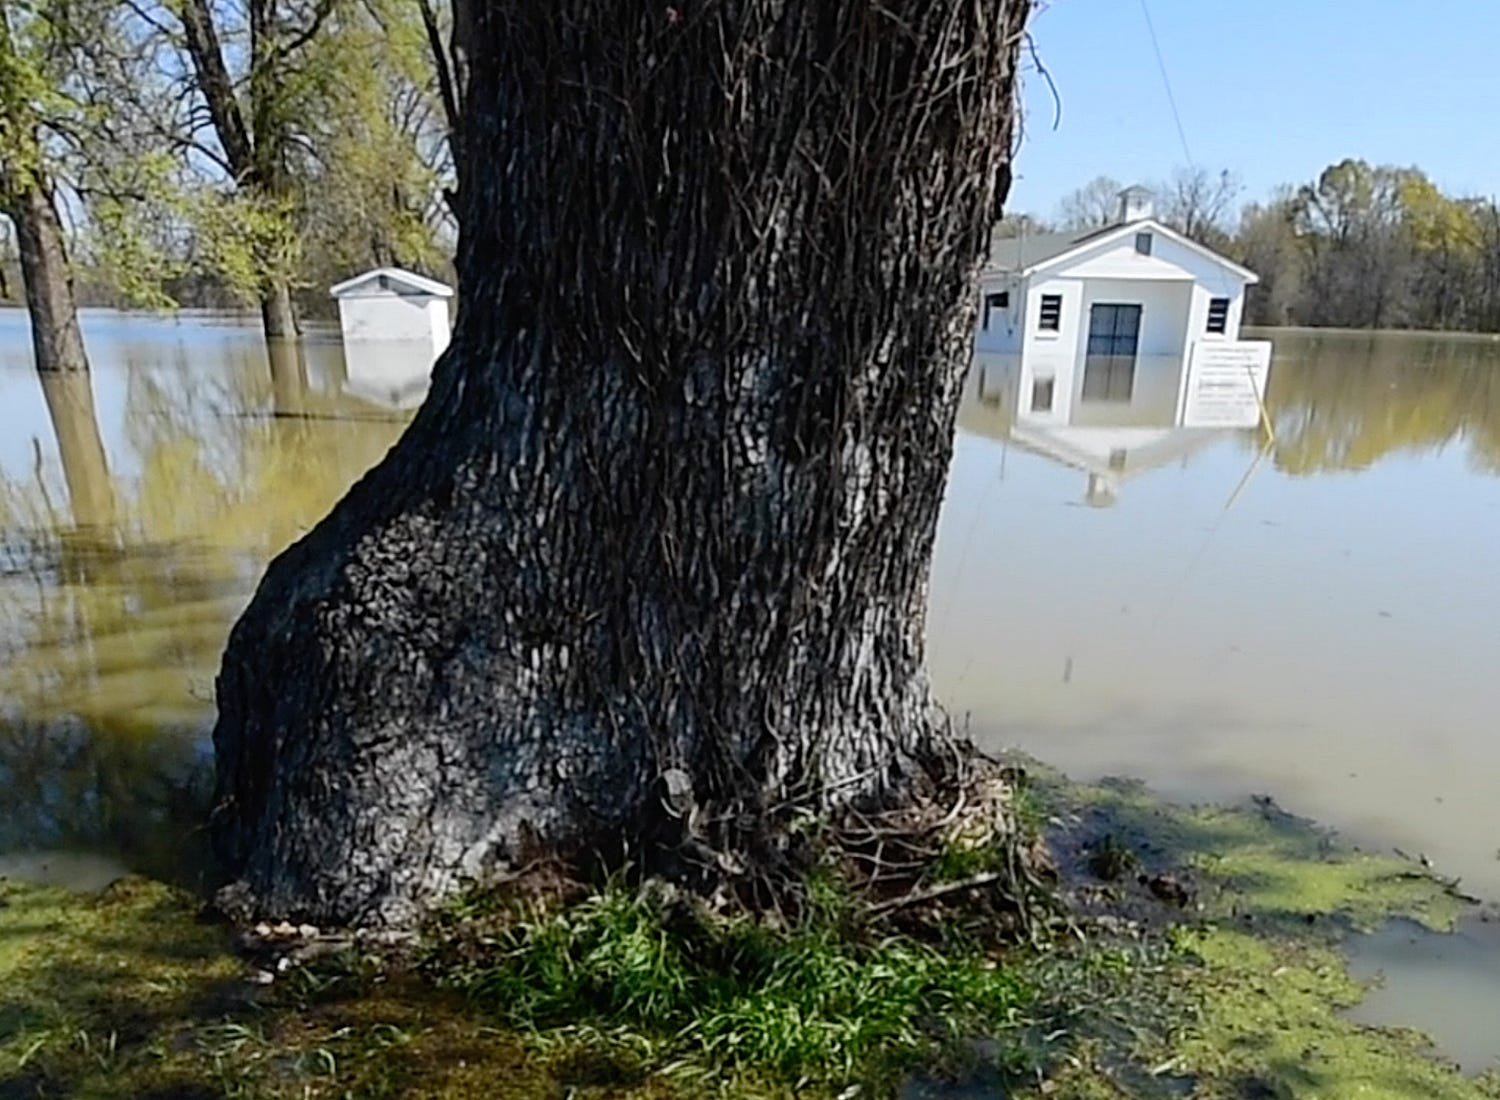 Evergreen M.B. Church on Floweree Road in Redwood has been breeched by floodwaters. Its cemetery, surrounding three of its four sides, is submerged with barely any tombstones visible.